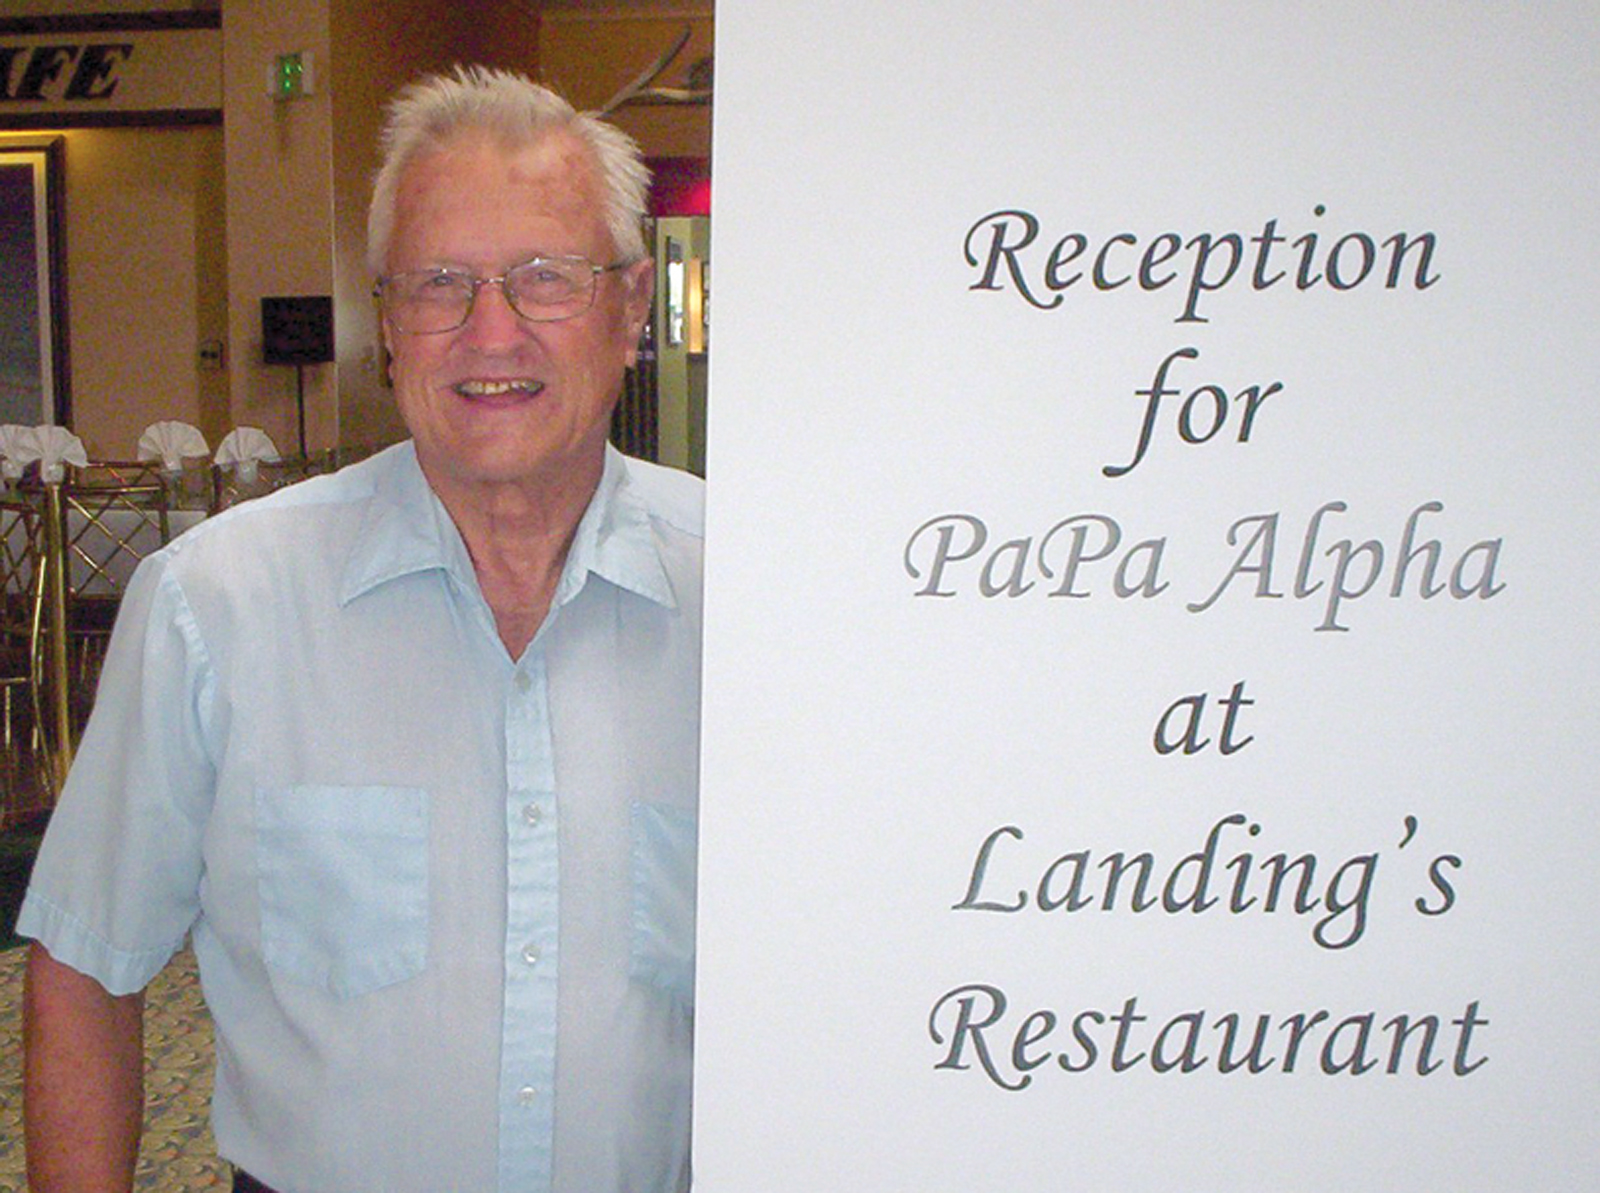 Phil Aune, Longest Serving Air Traffic Controller, Says Farewell